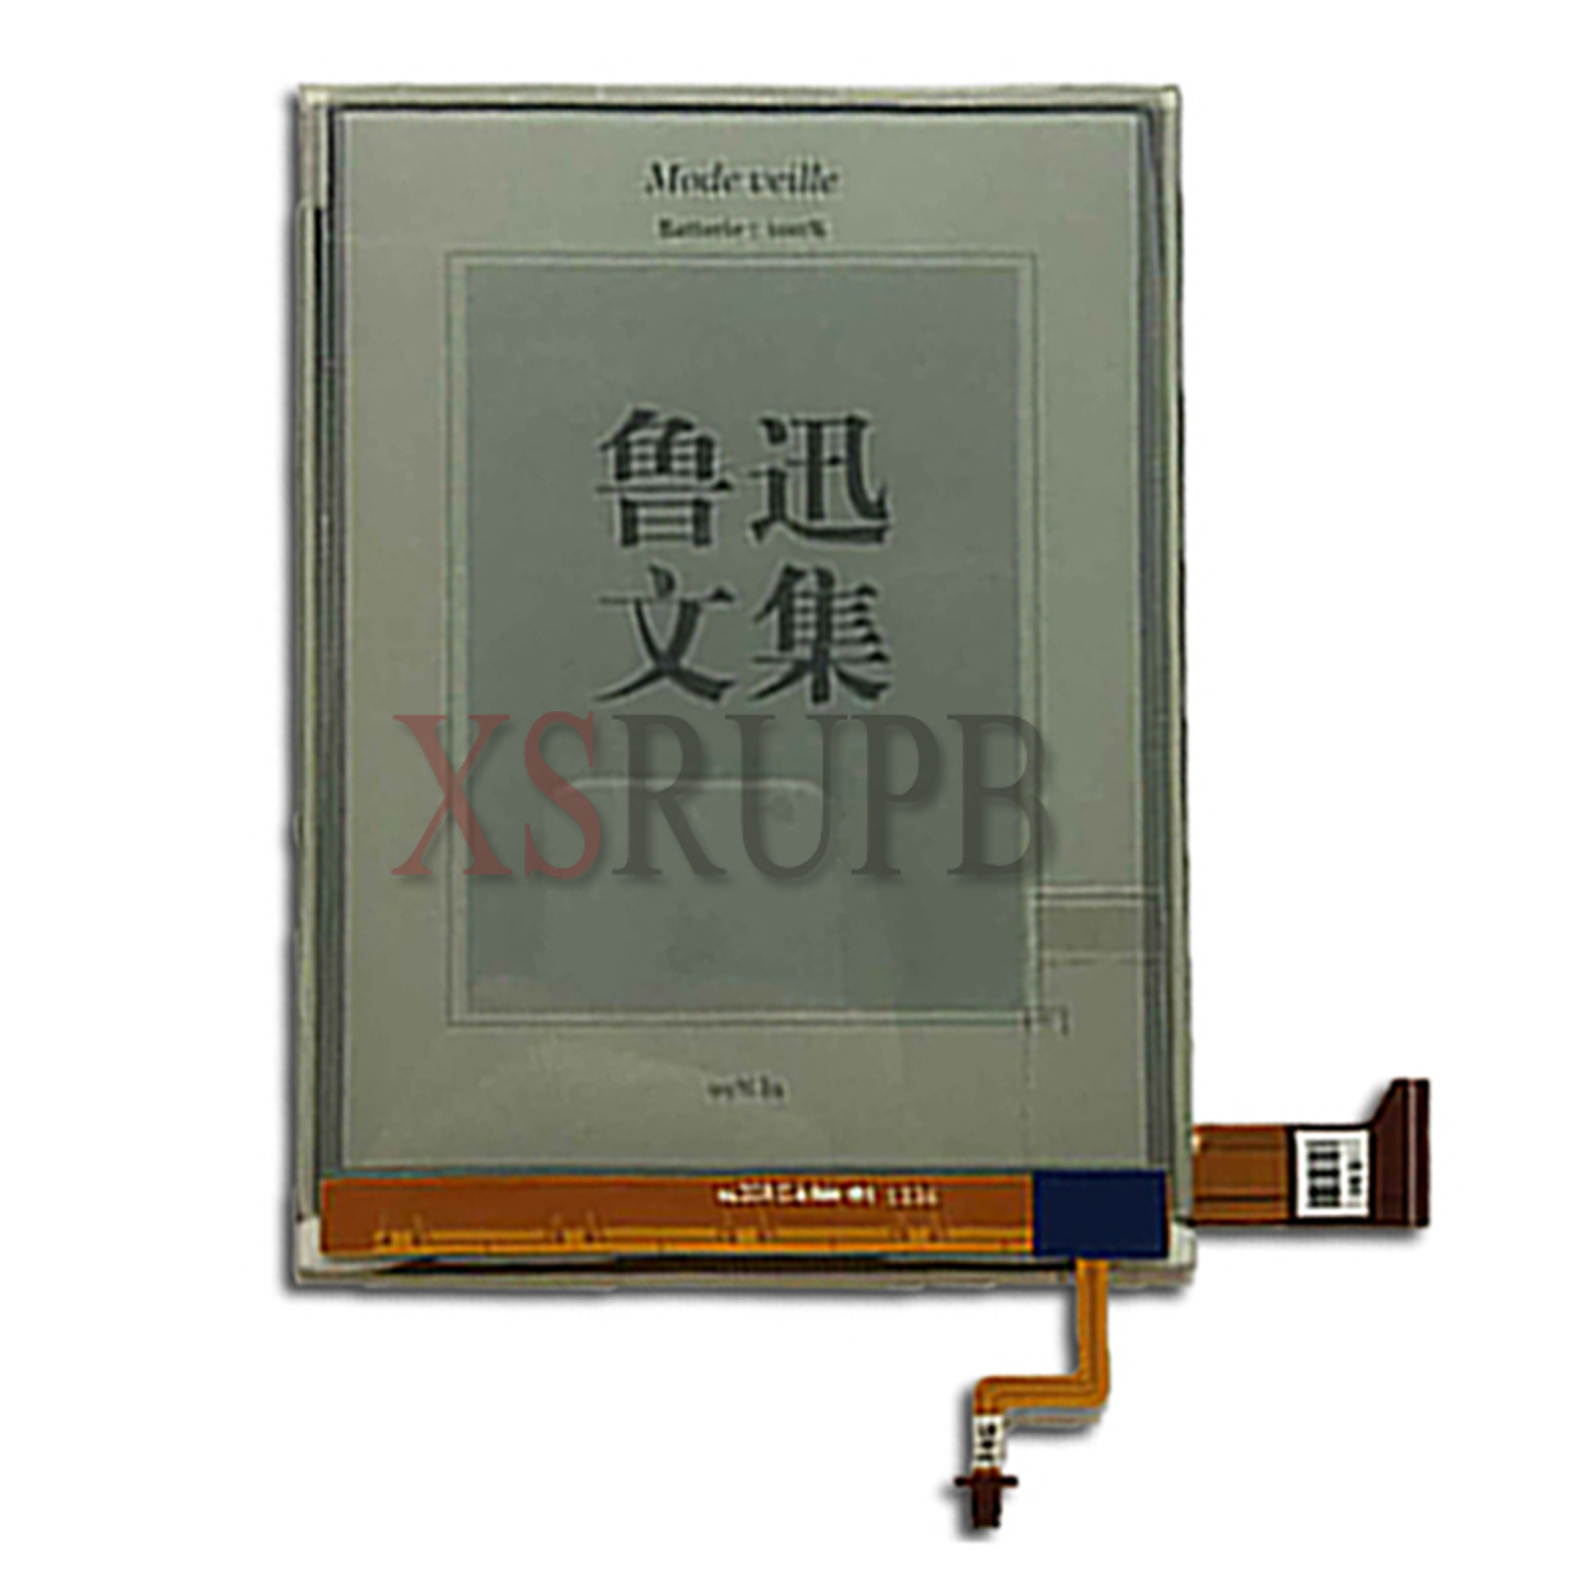 NEW Original E-Ink 758*1024 6.0 inch HD XGA Pearl Screen For bq Nuevo Cervantes 8GB Reader Ebook eReader LCD Display new original 5 inch e ink lcd display screen for pocketbook 360 ed050sc3 lf